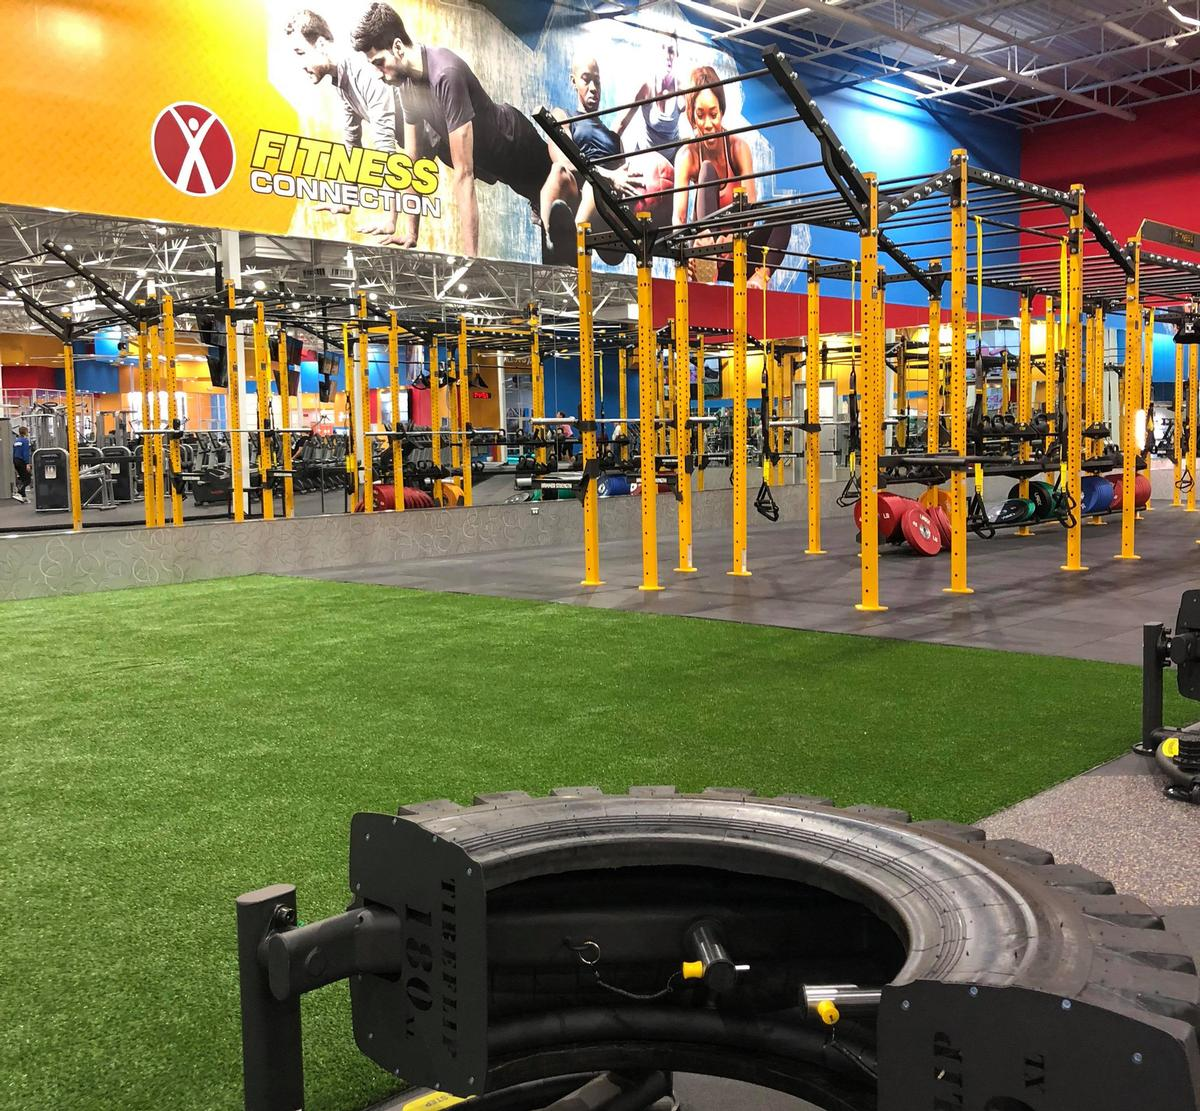 Founded in 1999, Fitness Connection was one of the first low-cost operators in the US